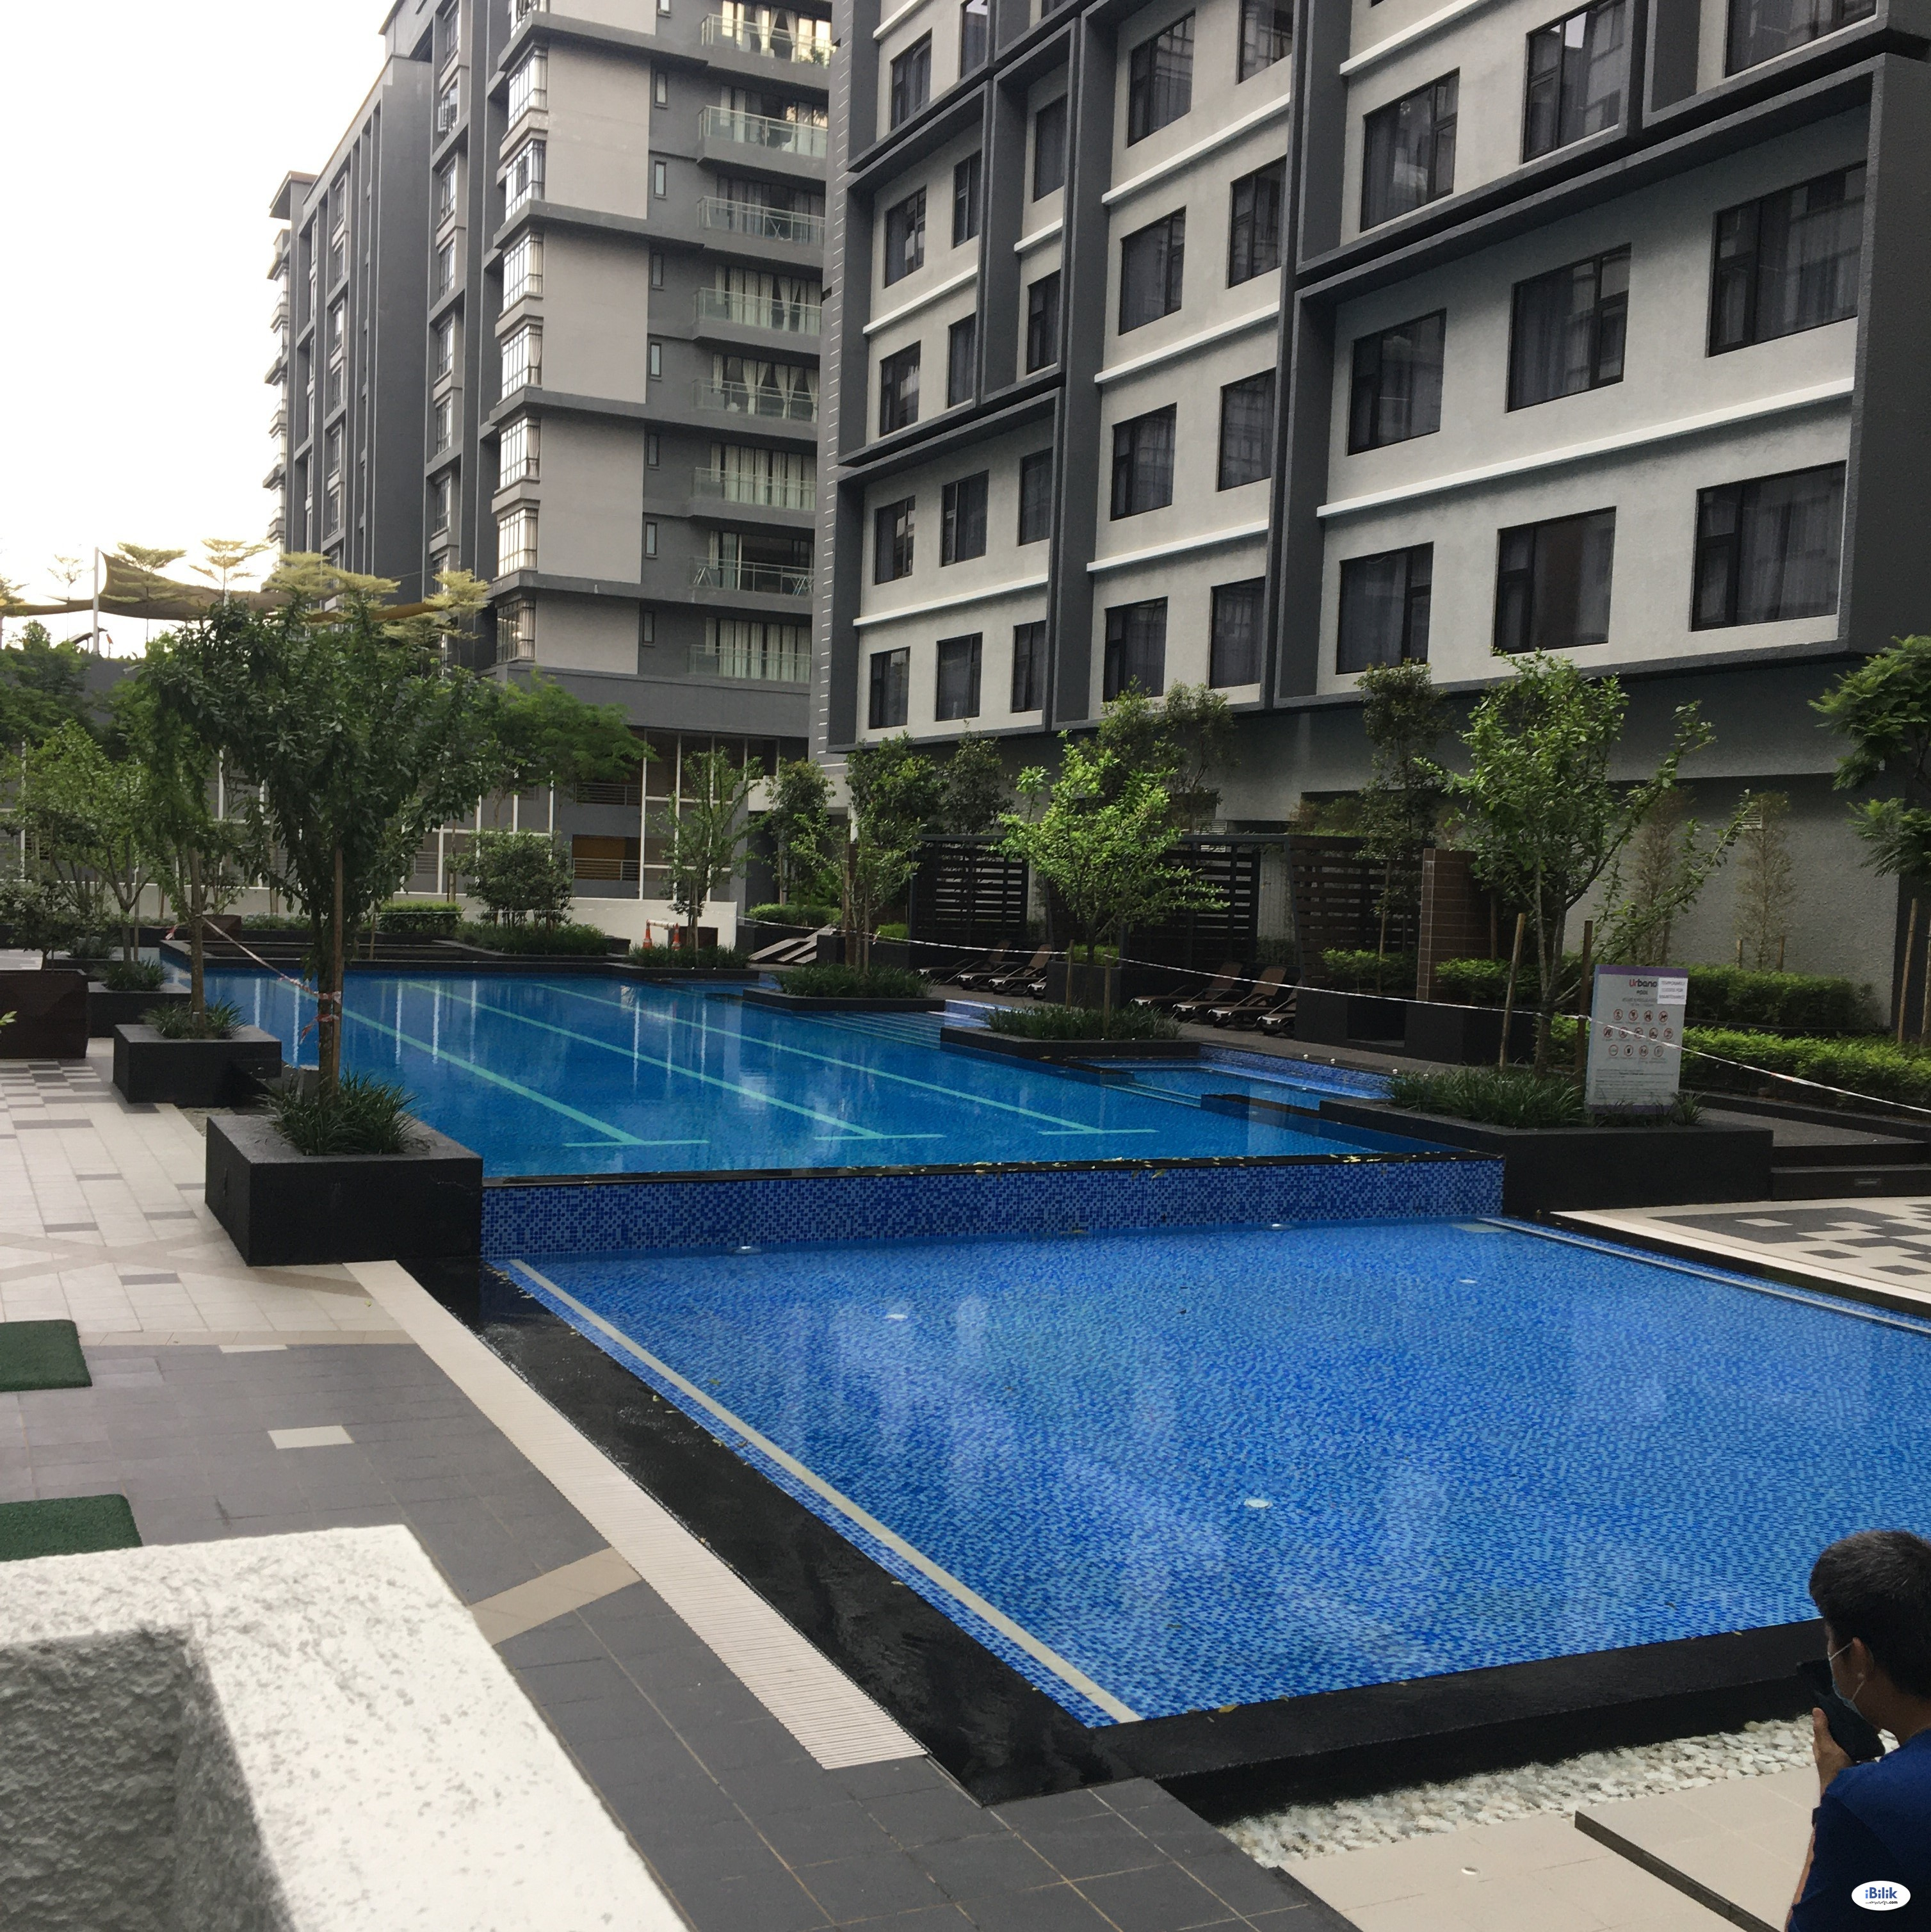 !!MCO PROMOTION!! BRAND NEW Middle Room for Rent @ Urbano Utropolis Glenmarie Shah Alam